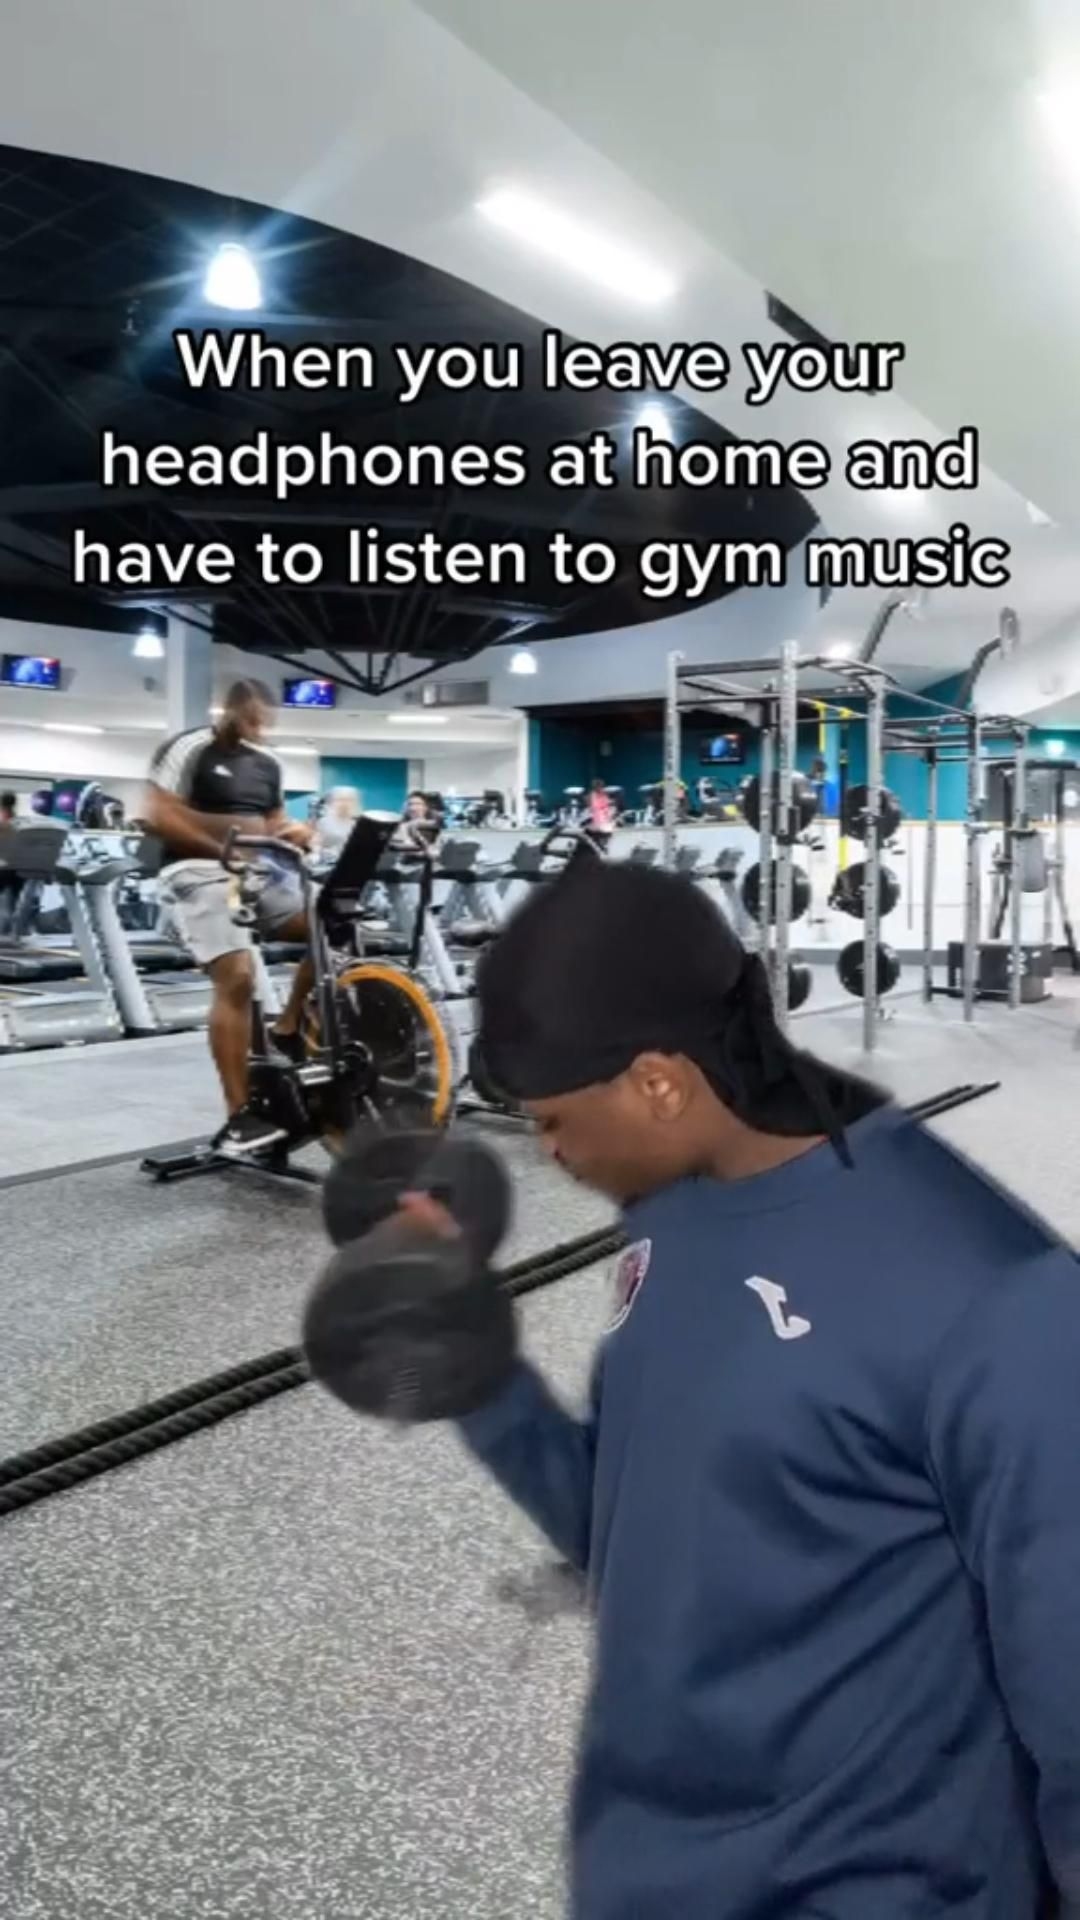 When you are forced to listen to the gym music 😂 Follow for more funny gym videos!